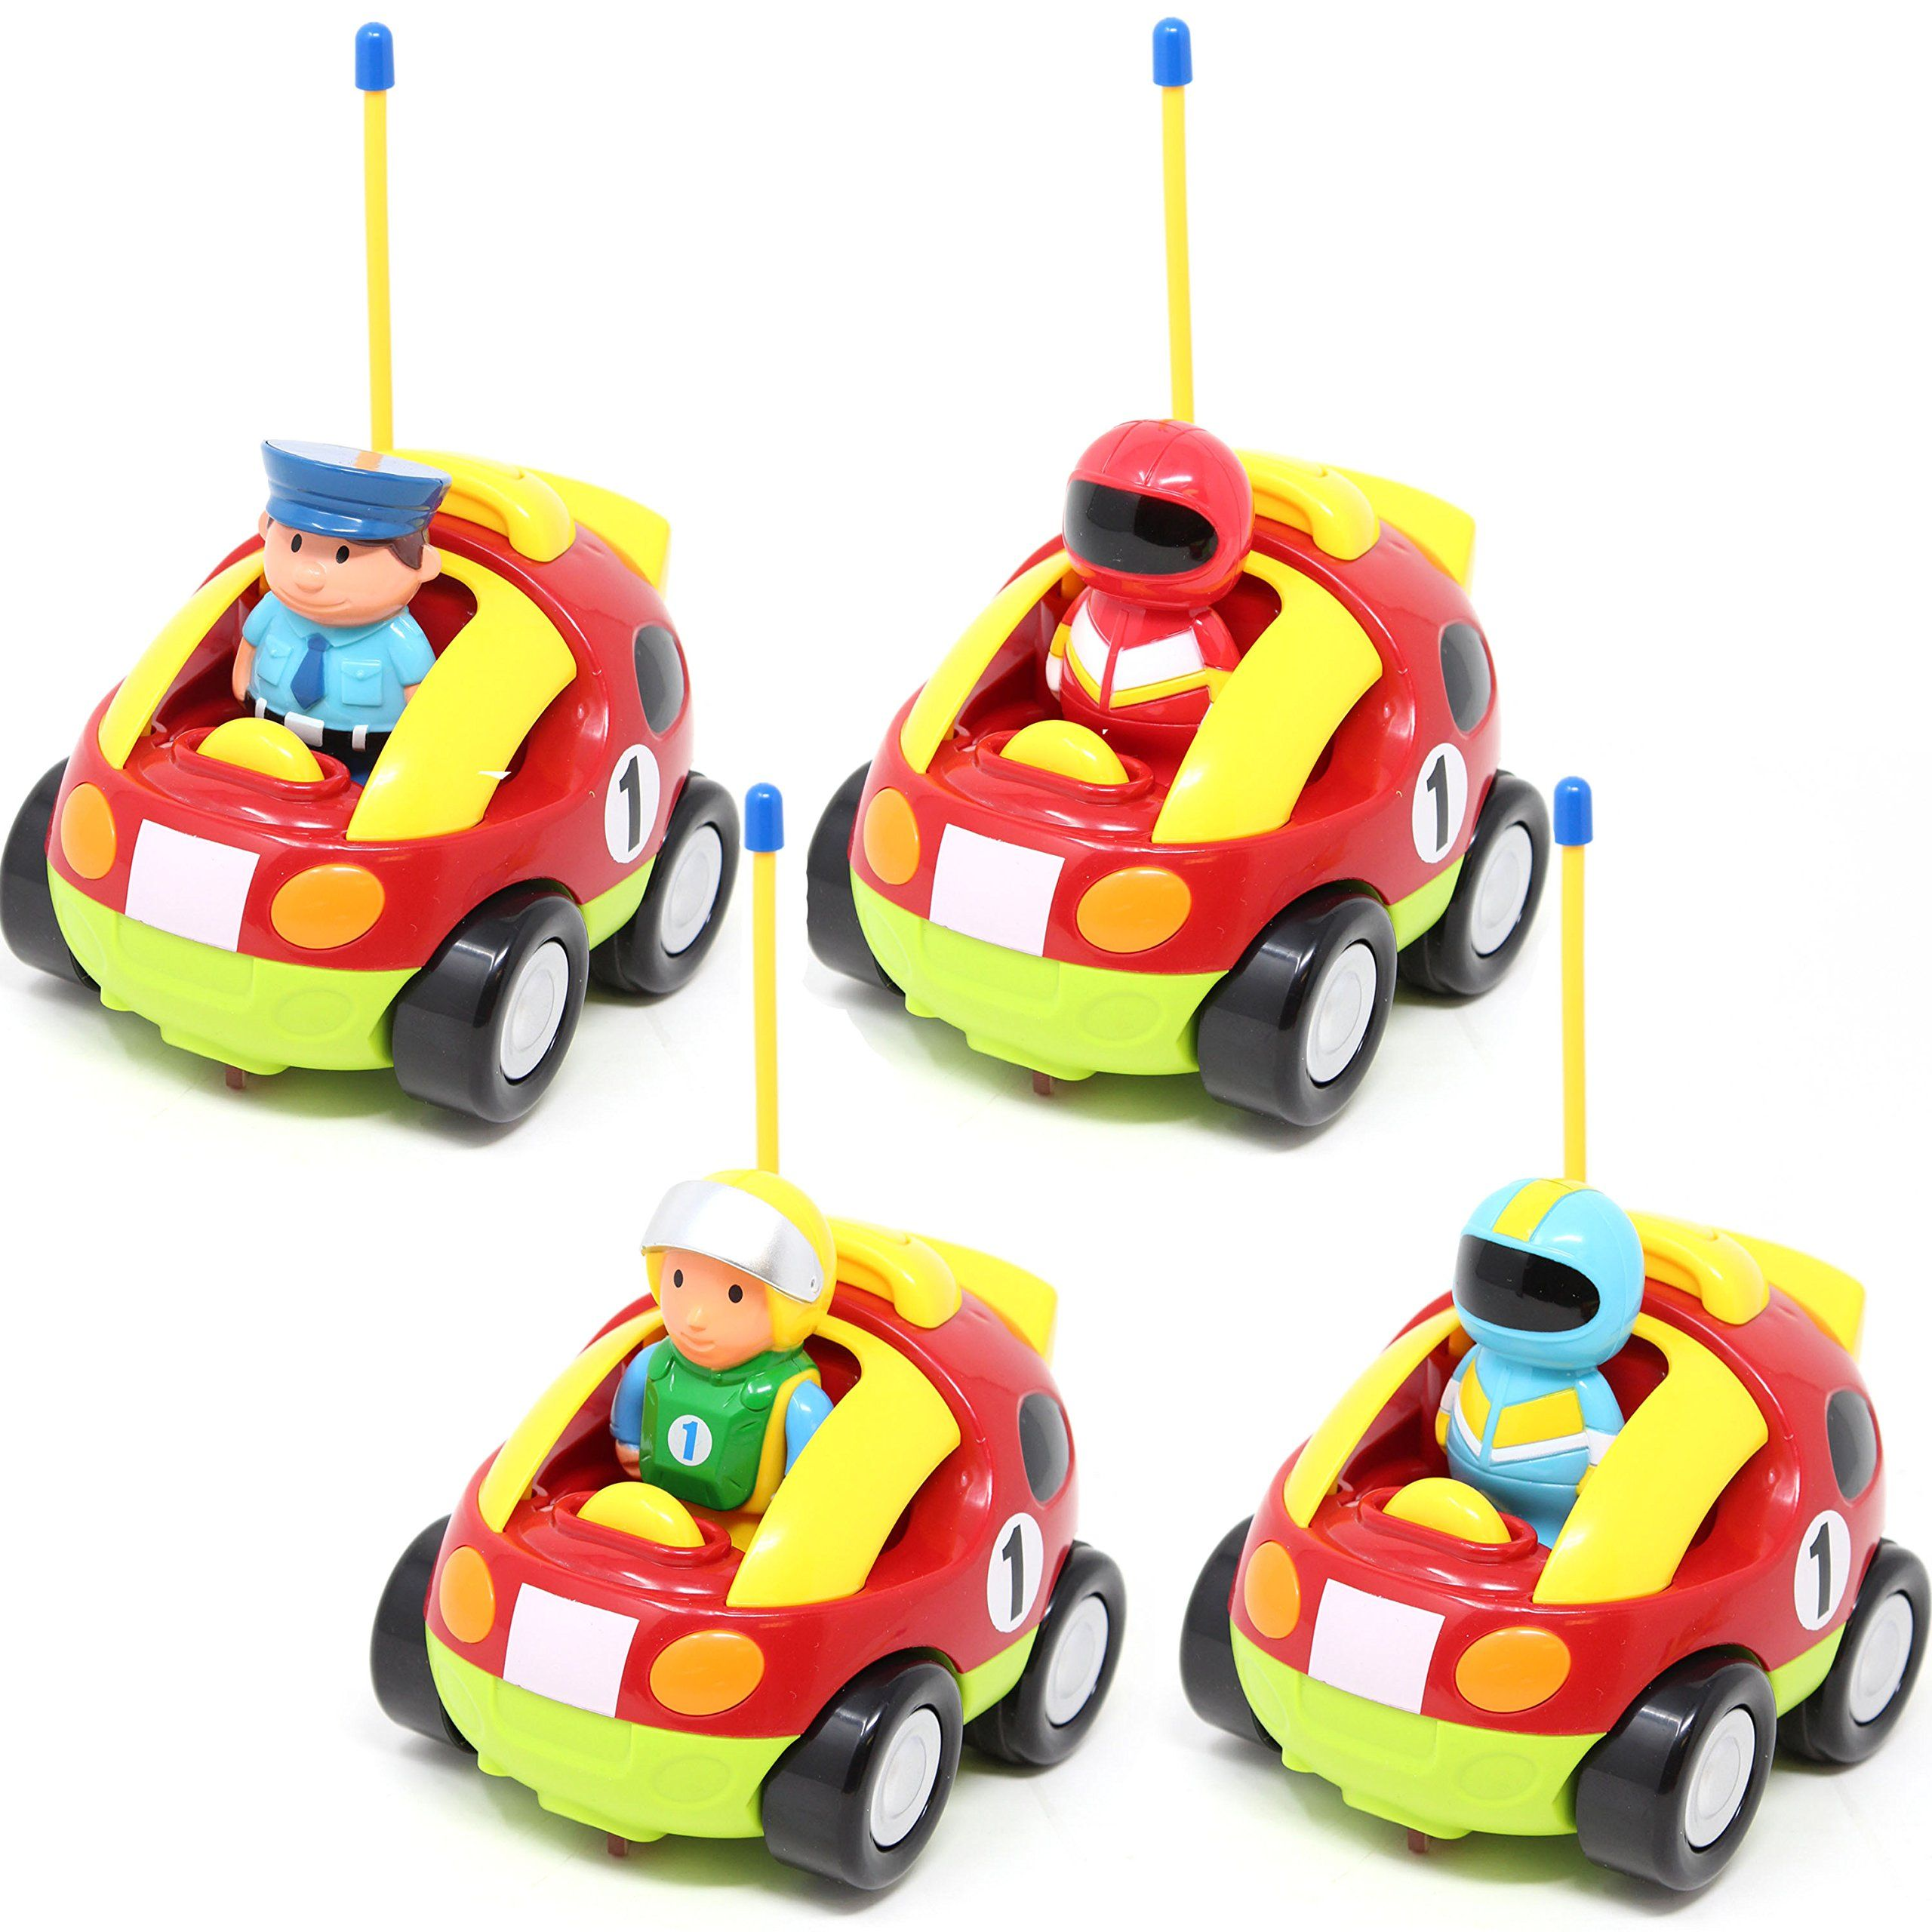 Cartoon Rc Race Car Radio Remote Control With Music Hashtag1 Toddler Car Toy Car Kids Electronics